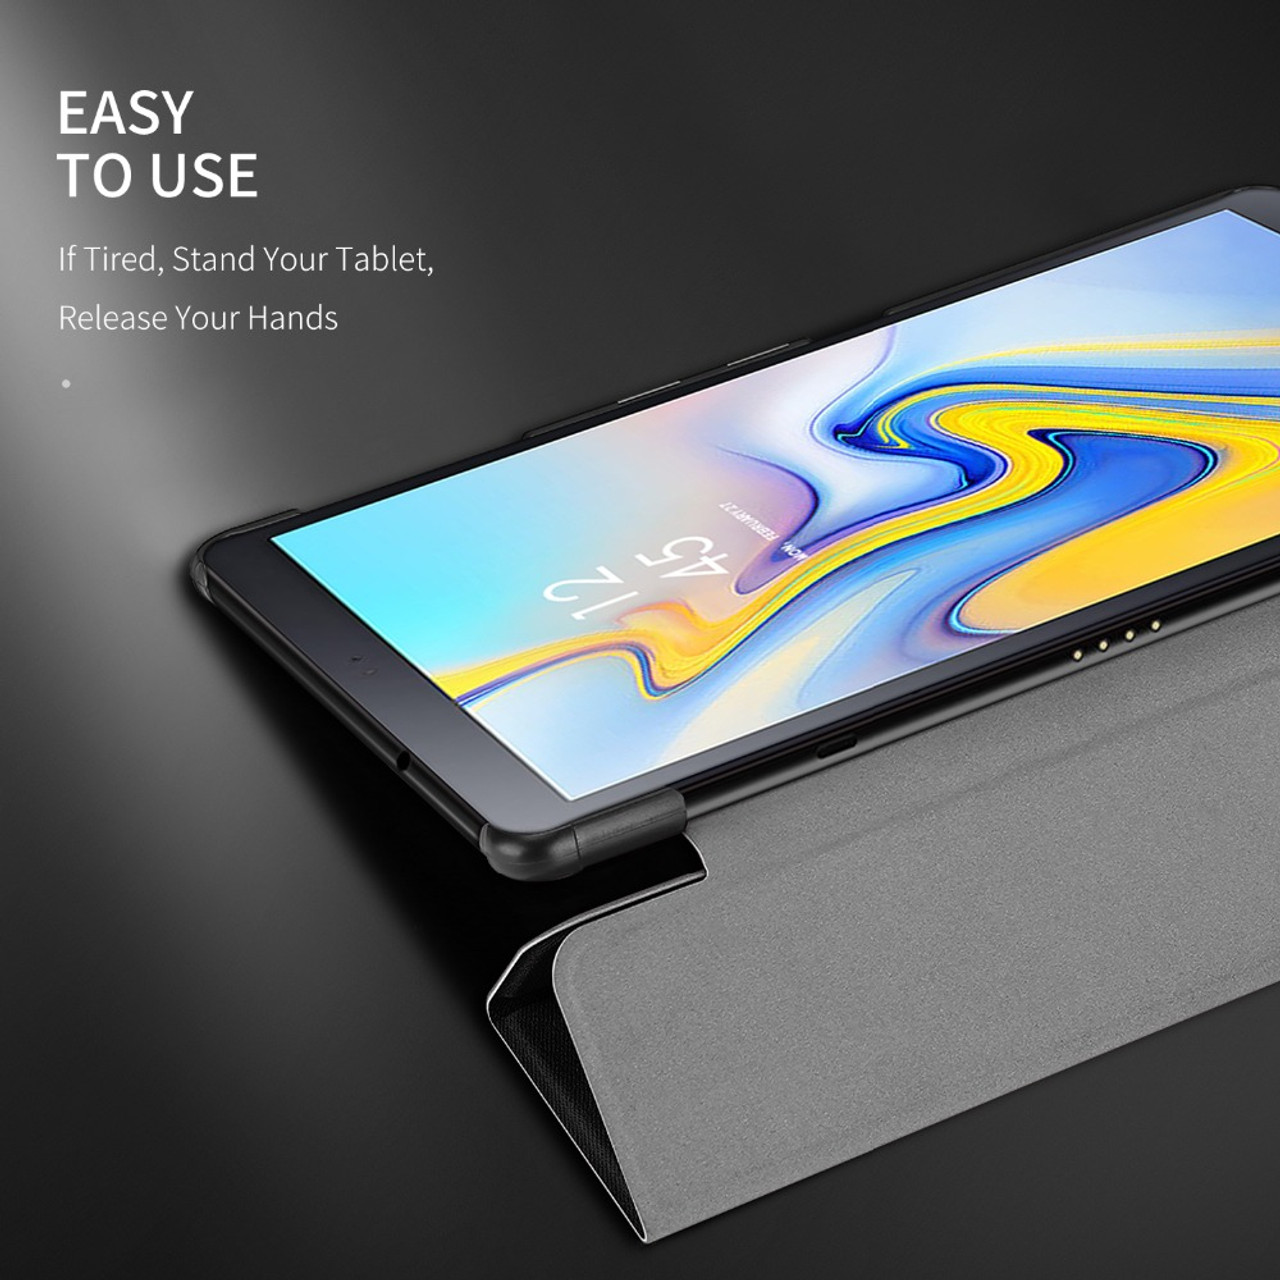 e7968eed4bd ... DUX DUCIS PU Leather Case for Samsung Galaxy TAB A2 10.5 Smart Flip  Cover for Samsung ...